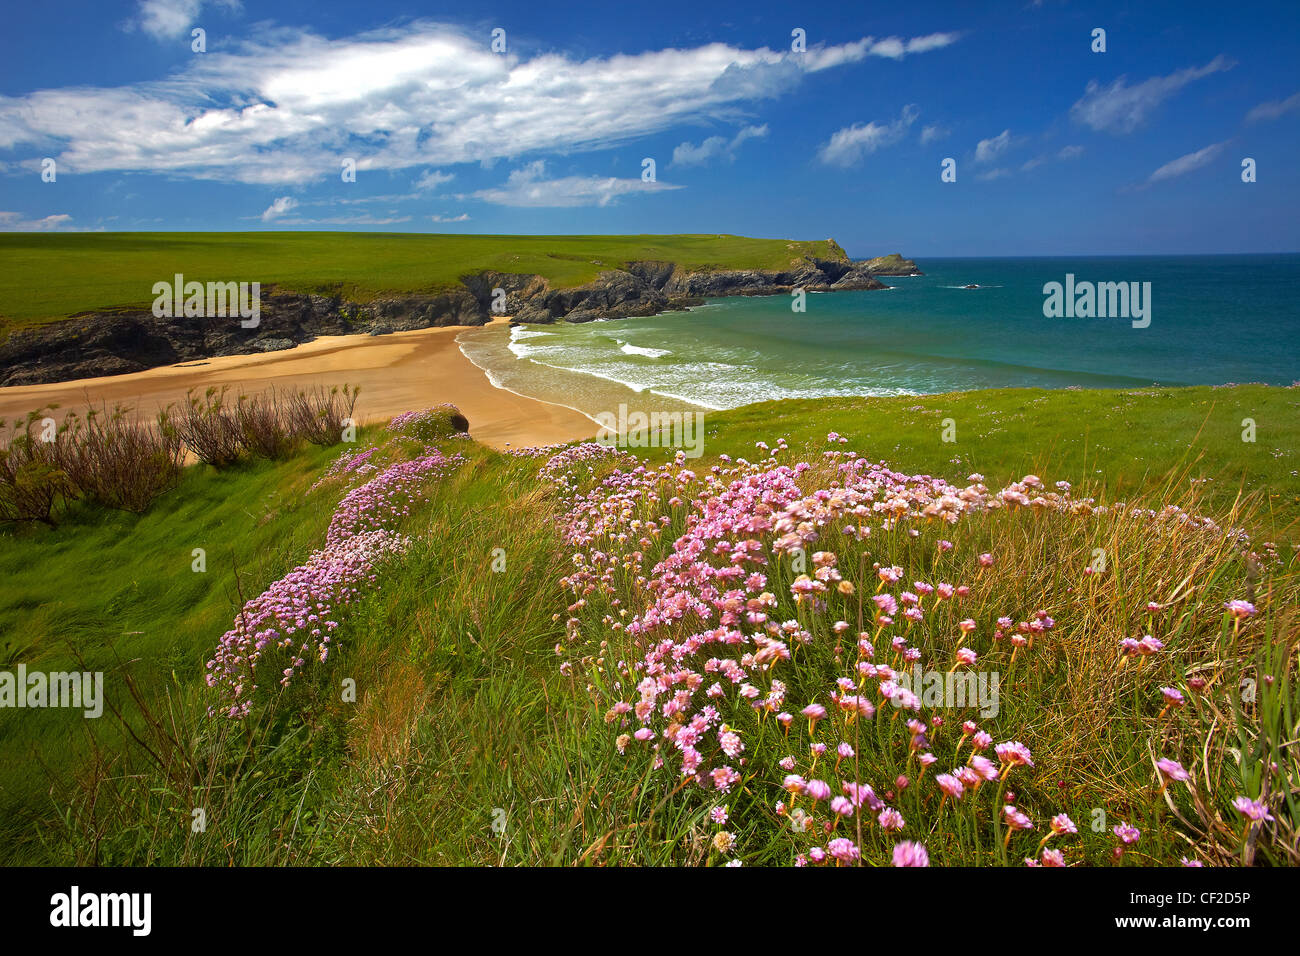 Porth Joke beach between the headlands of Kelsey Head and Pentire Point West. - Stock Image